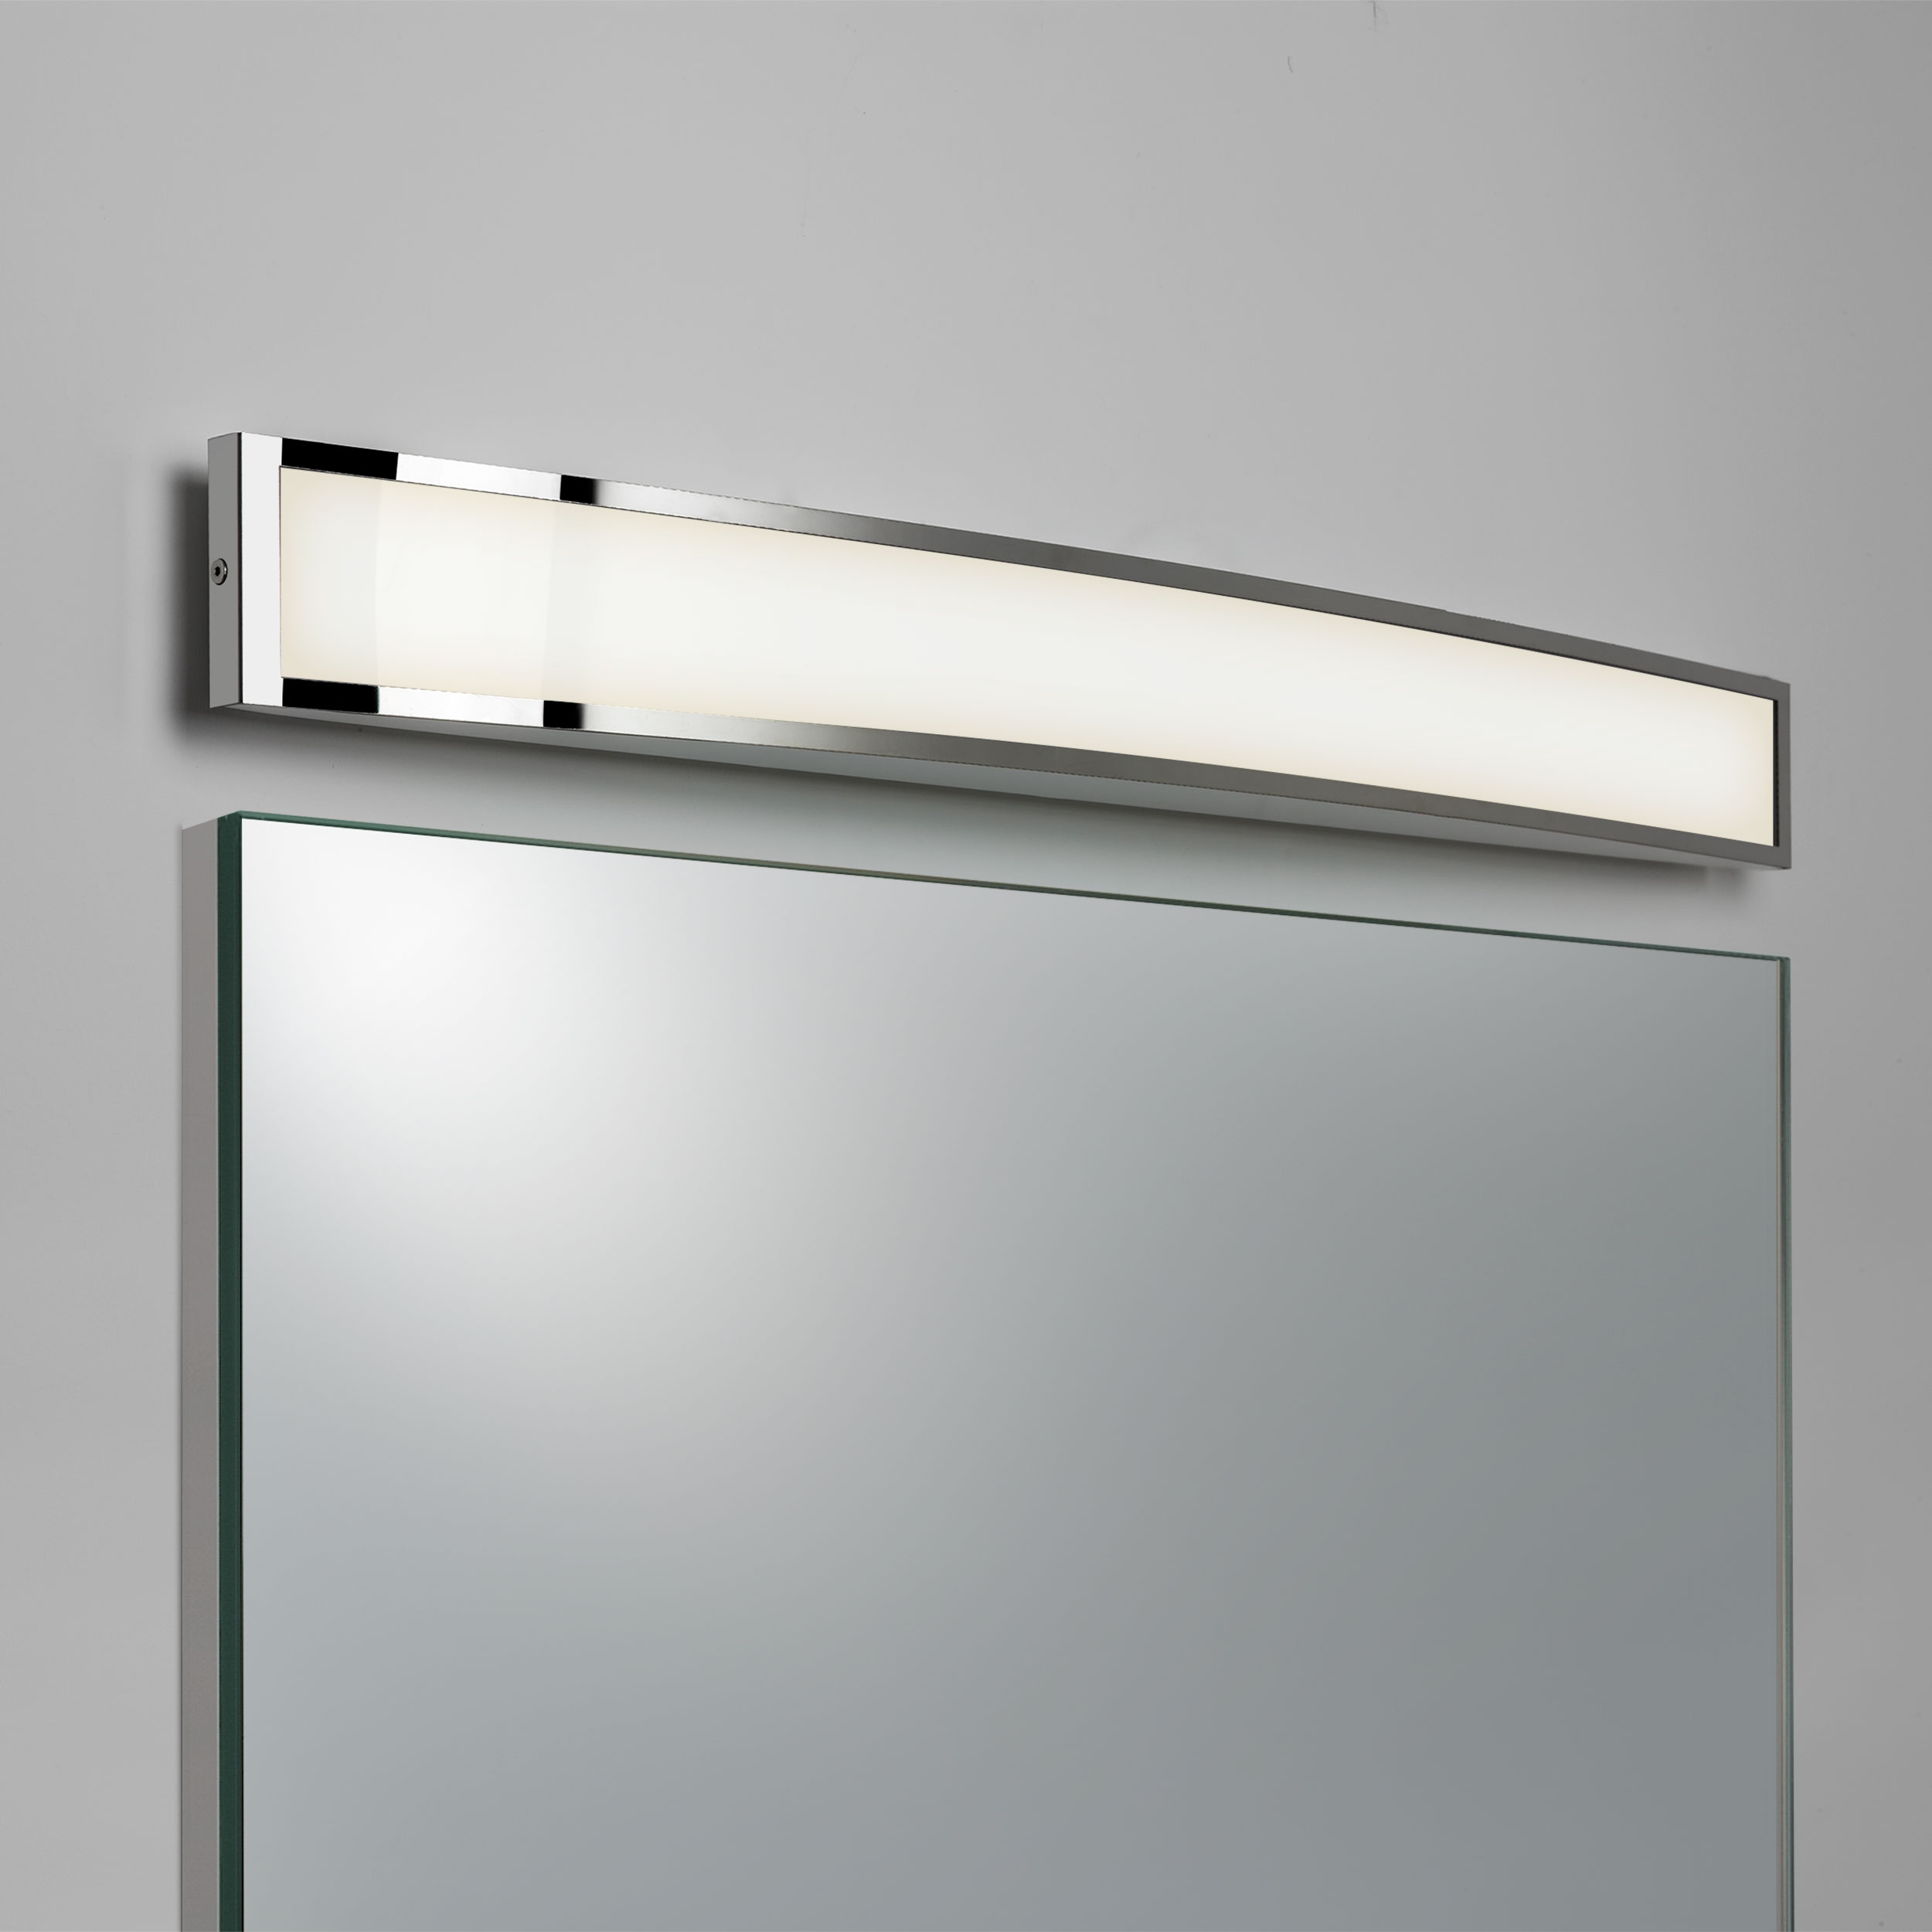 Astro Chord  bathroom warm white LED over mirror wall light 7.2W Polished chrome Thumbnail 1